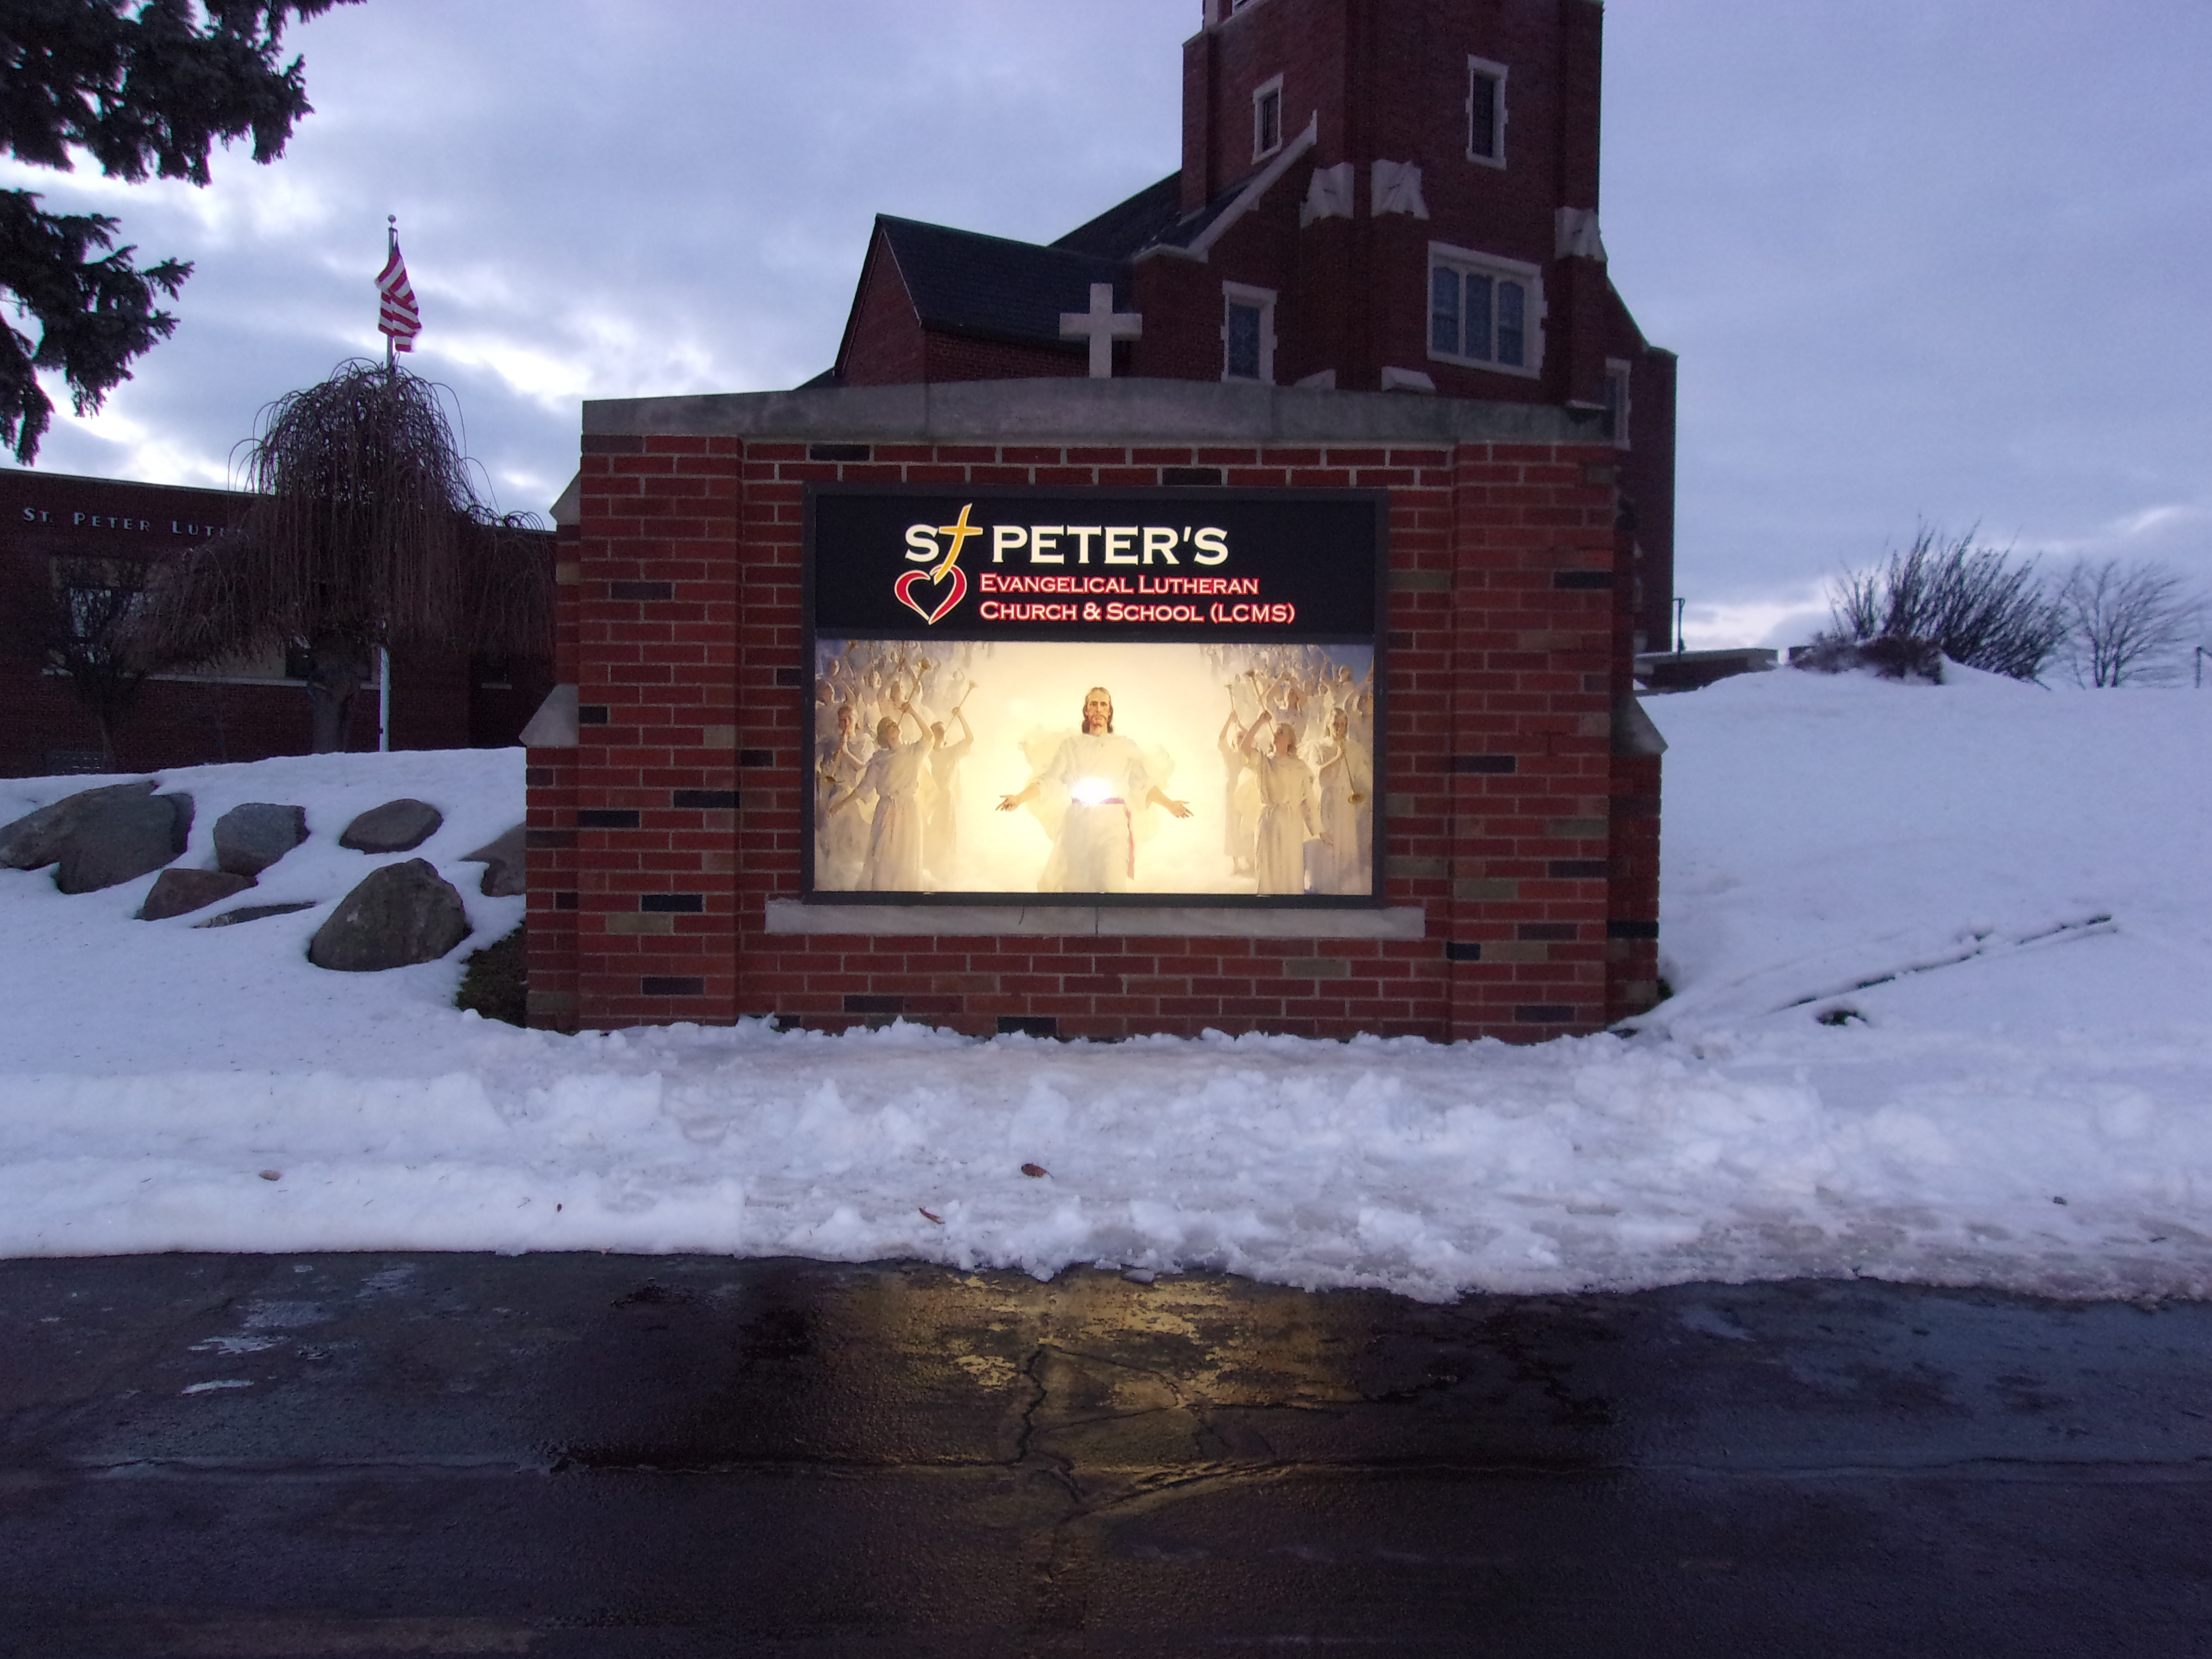 St. Peter's Evangelical Church - Richmond